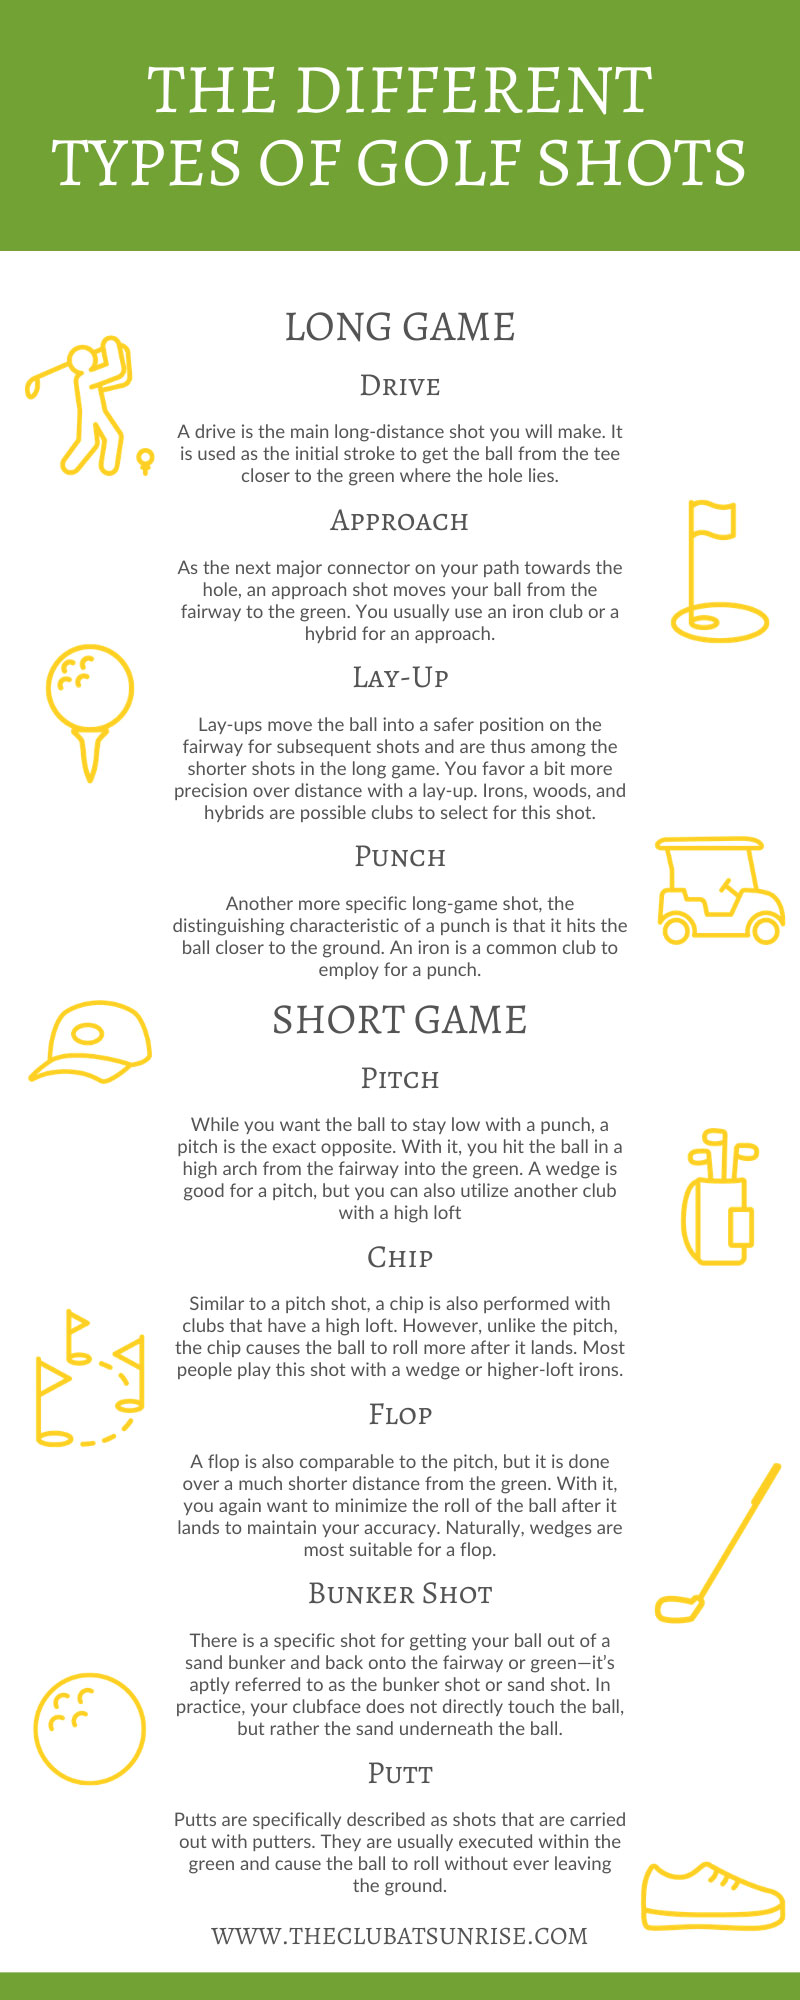 The Different Types of Golf Shots